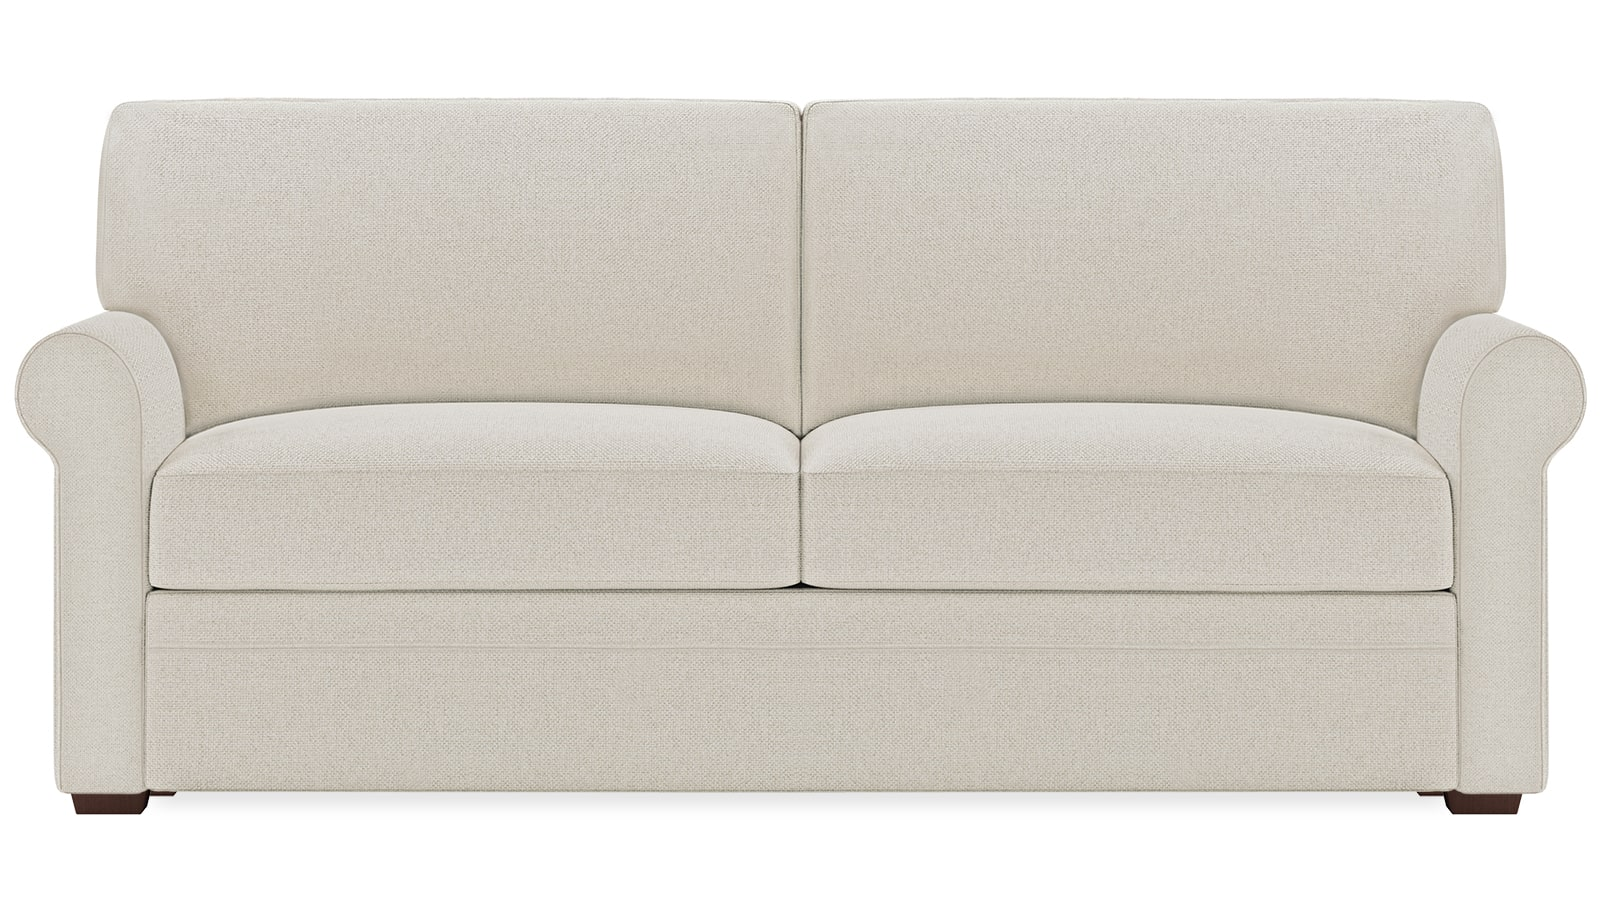 american leather gaines comfort sleeper - American Leather Sofa